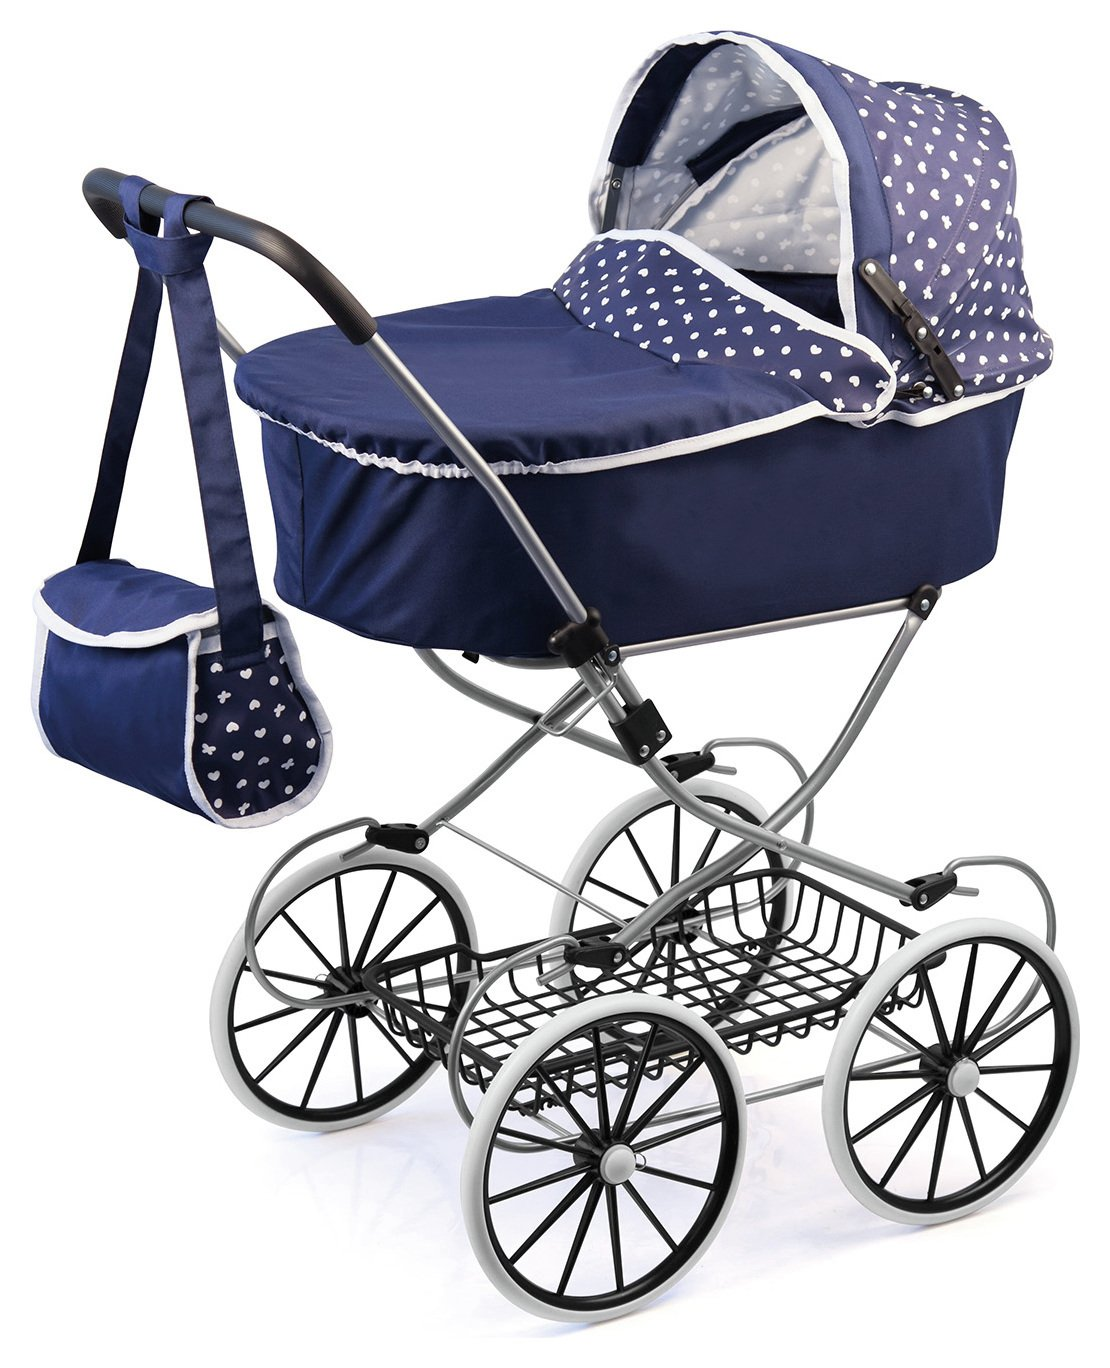 Image of Bayer Classic Deluxe Dolls Pram